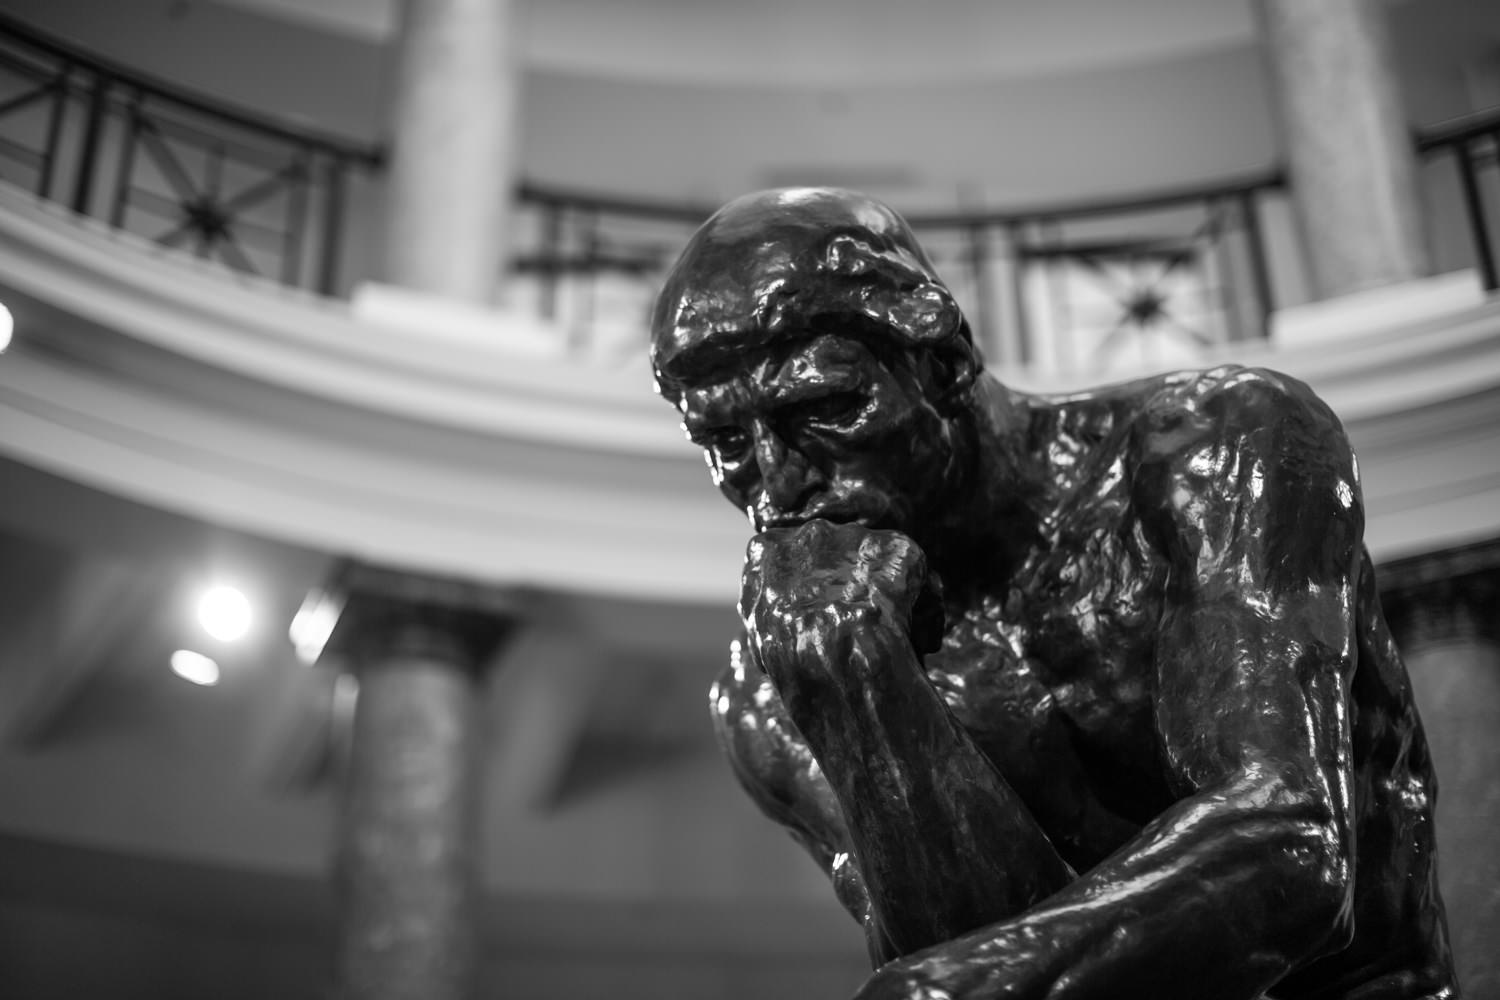 The Thinker by Rodin at Stanford University (April 2018)